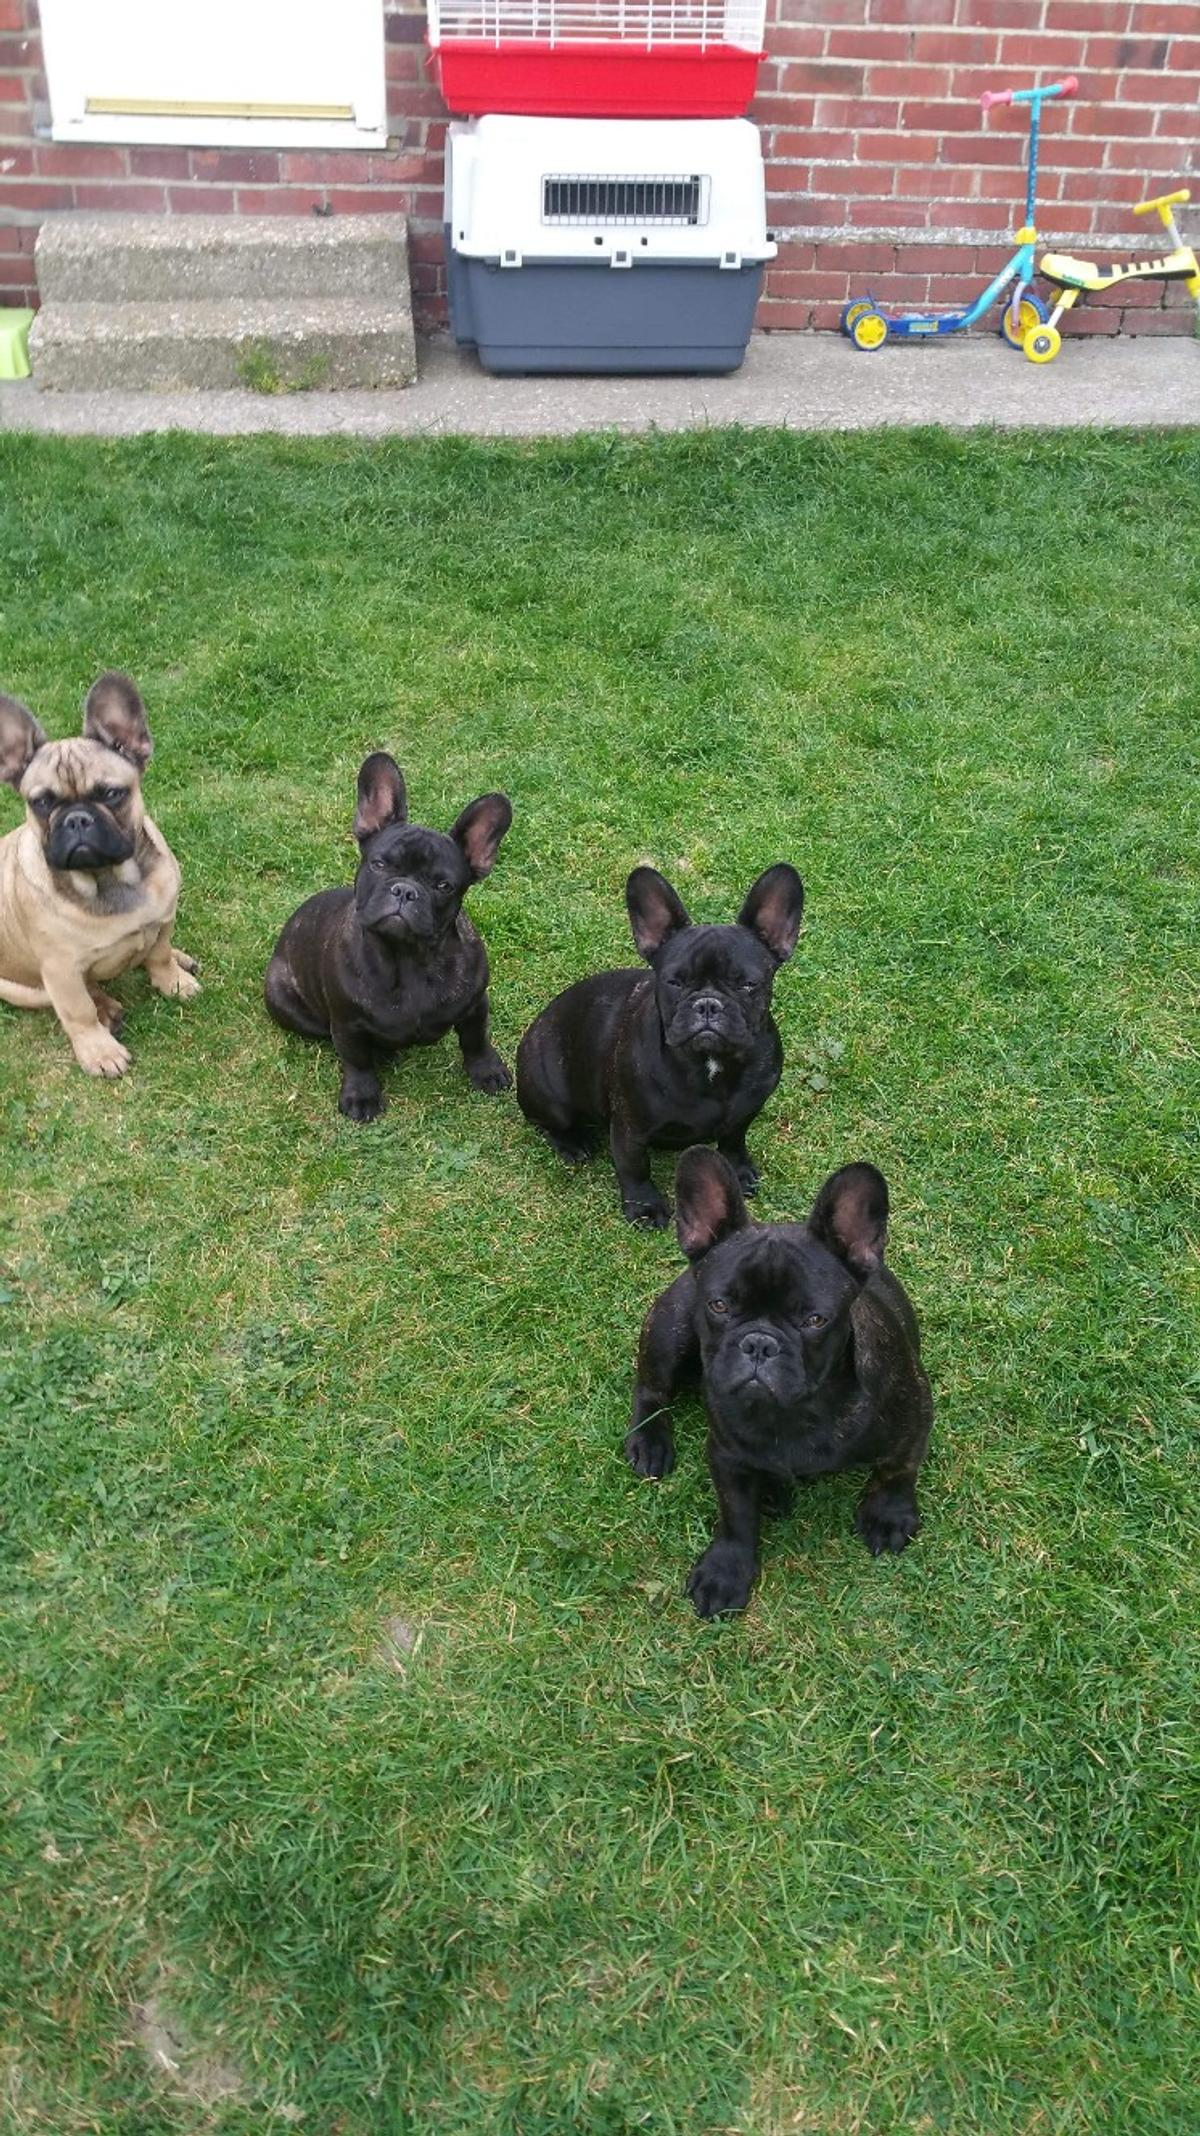 french bulldog puppies in tn37 hastings für 650,00 £ zum